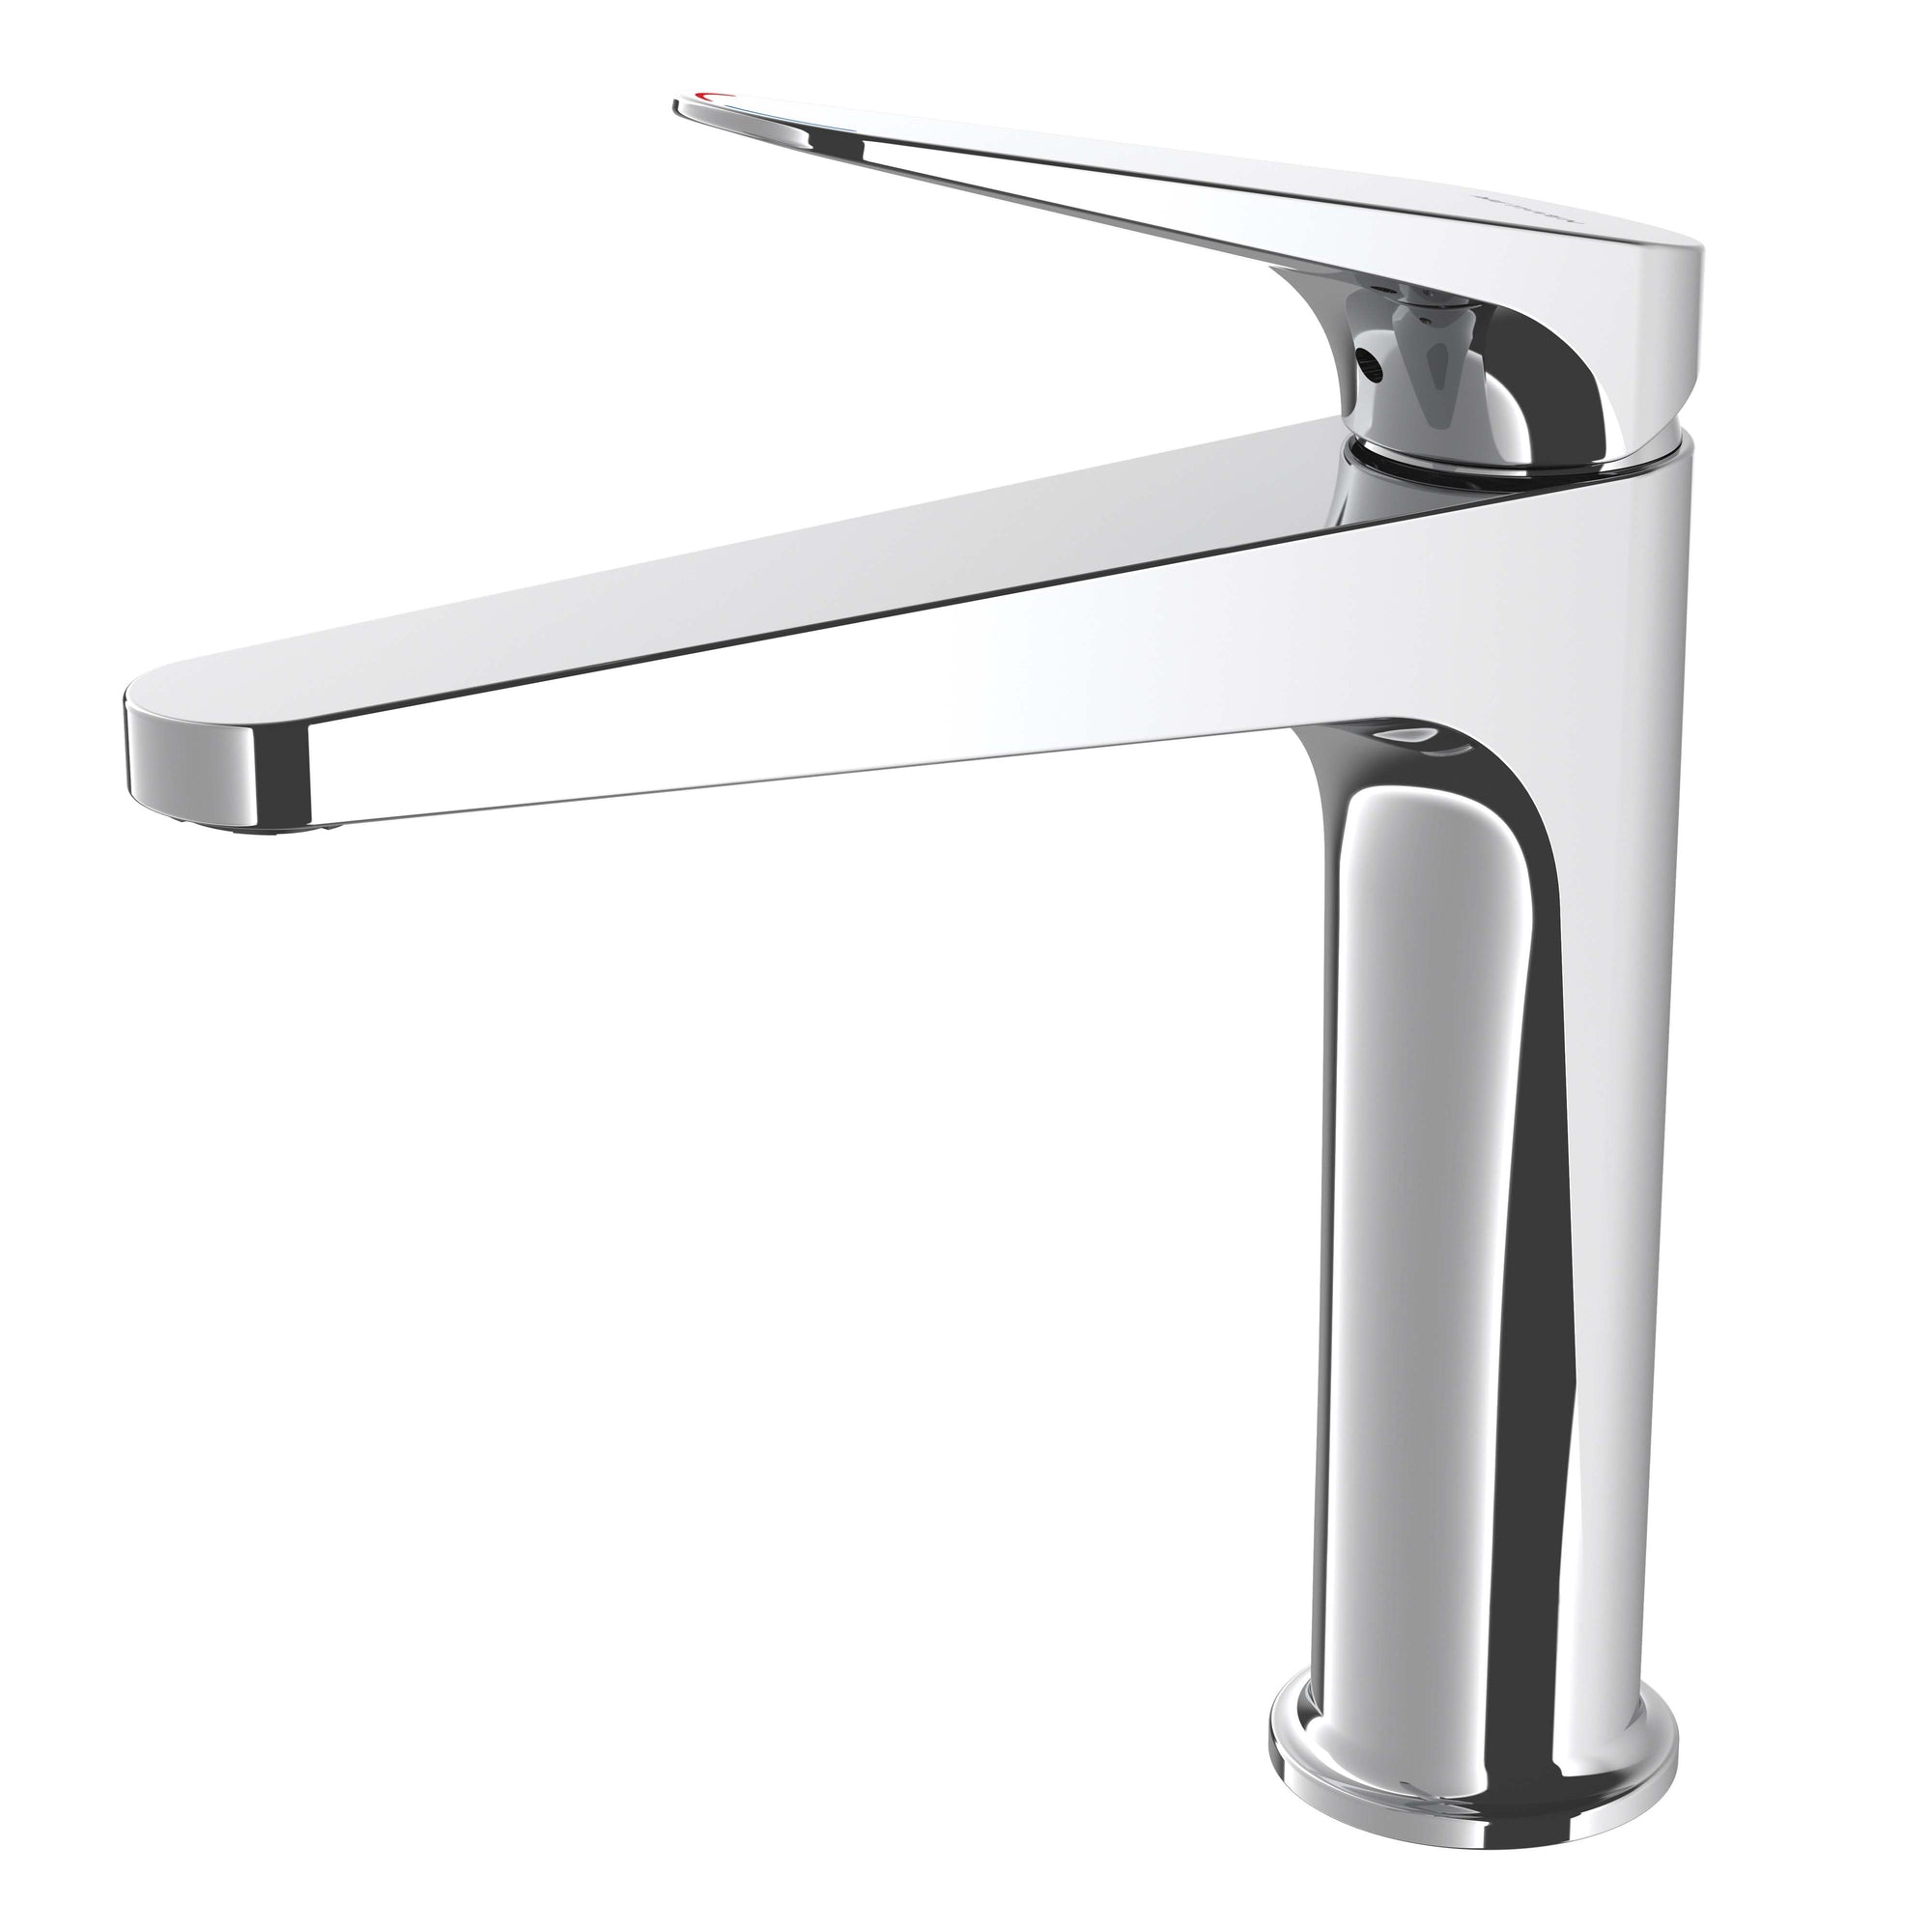 Methven Maku Sink Mixer | Chrome